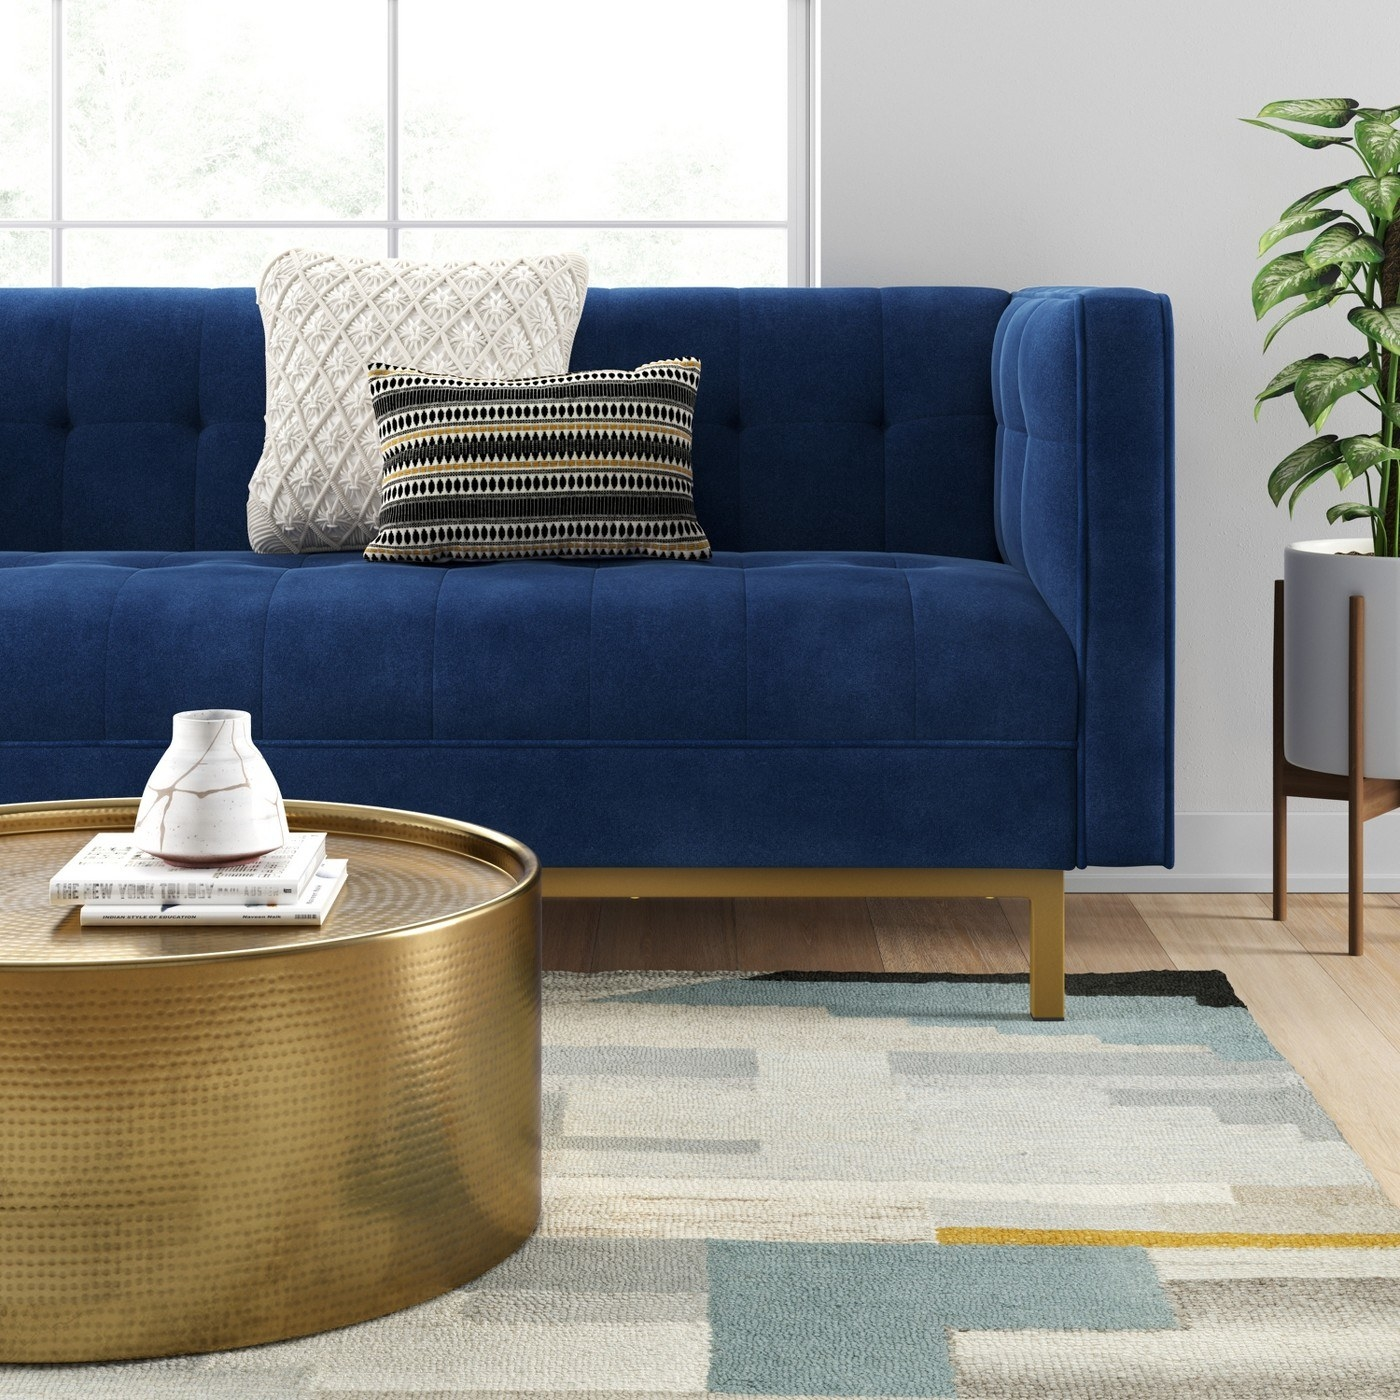 Best Online Sofa Store: 29 Of The Best Places To Buy A Sofa Online